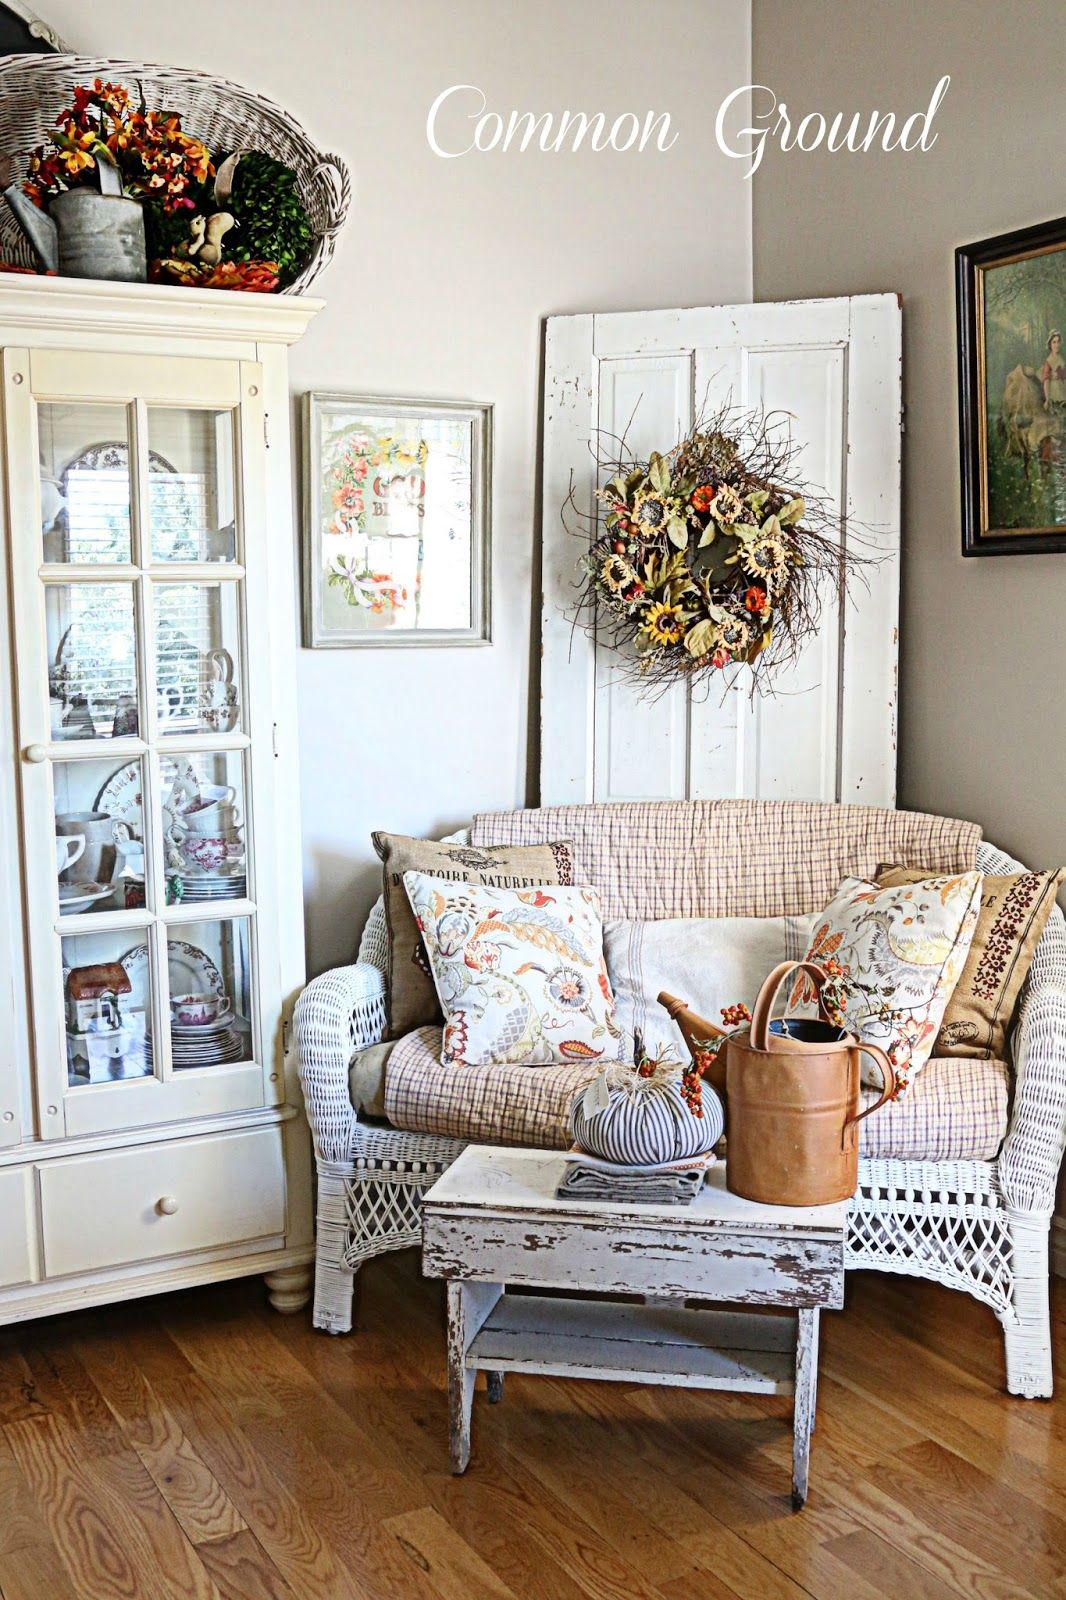 Kitchen Sitting Rooms Designs: Kitchen Sitting Area Dressed For Fall